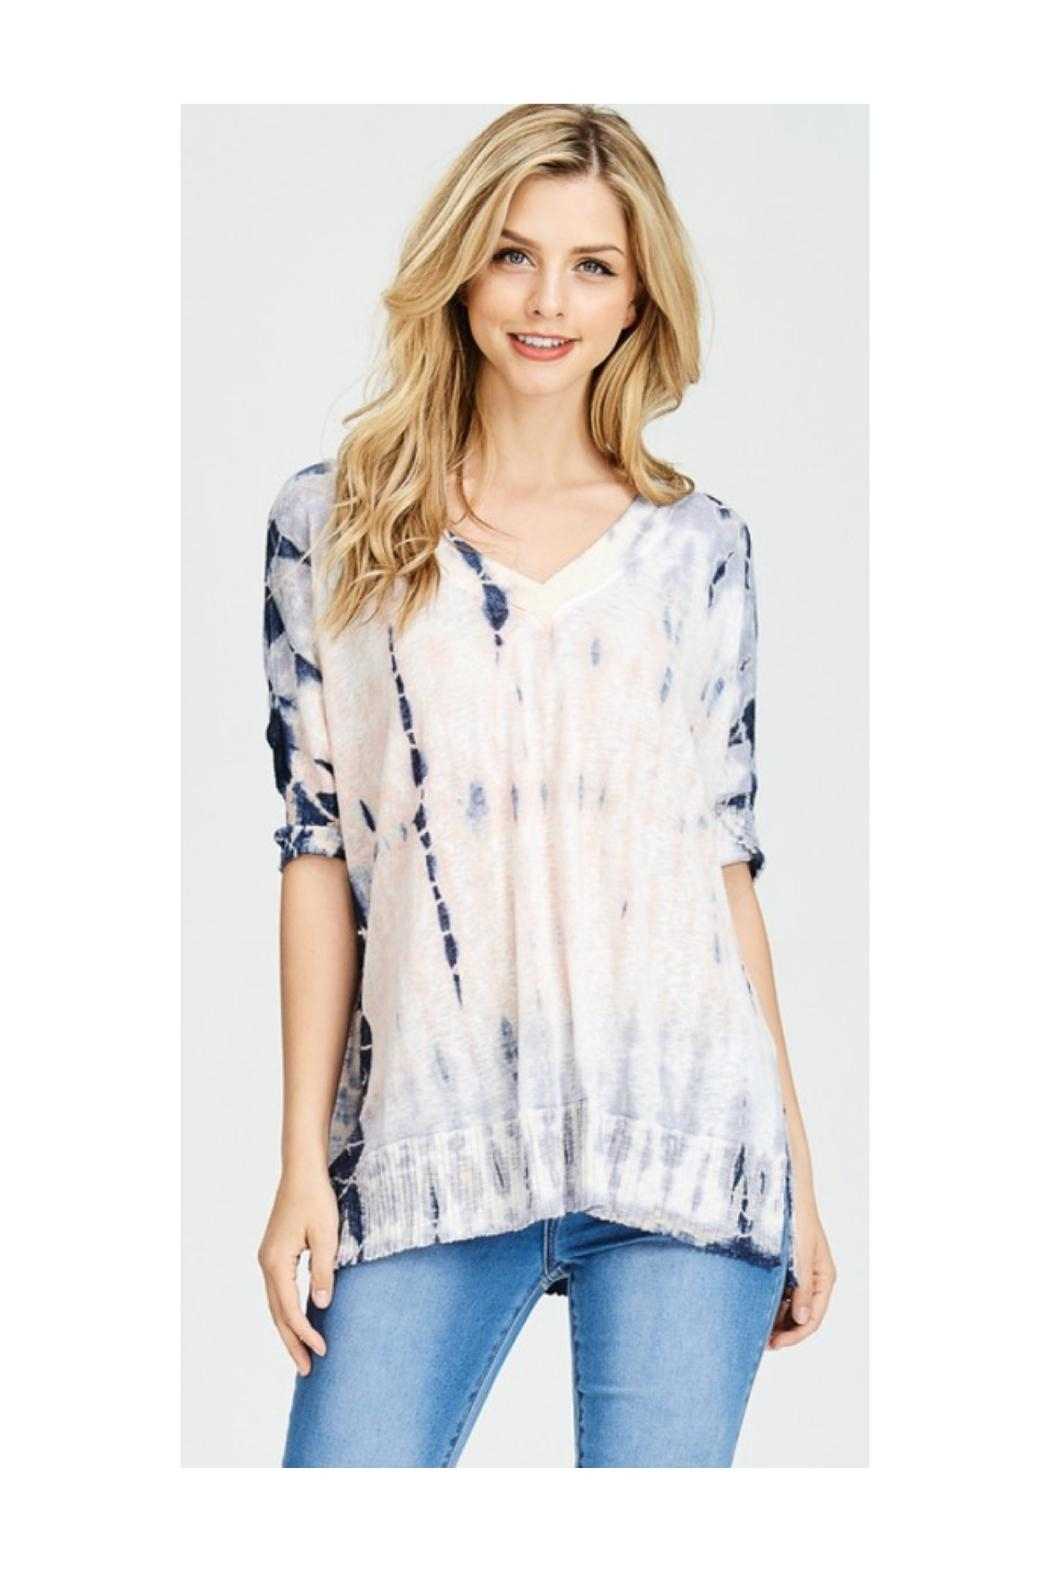 Polly & Esther Tie Dye V-Neck - Main Image